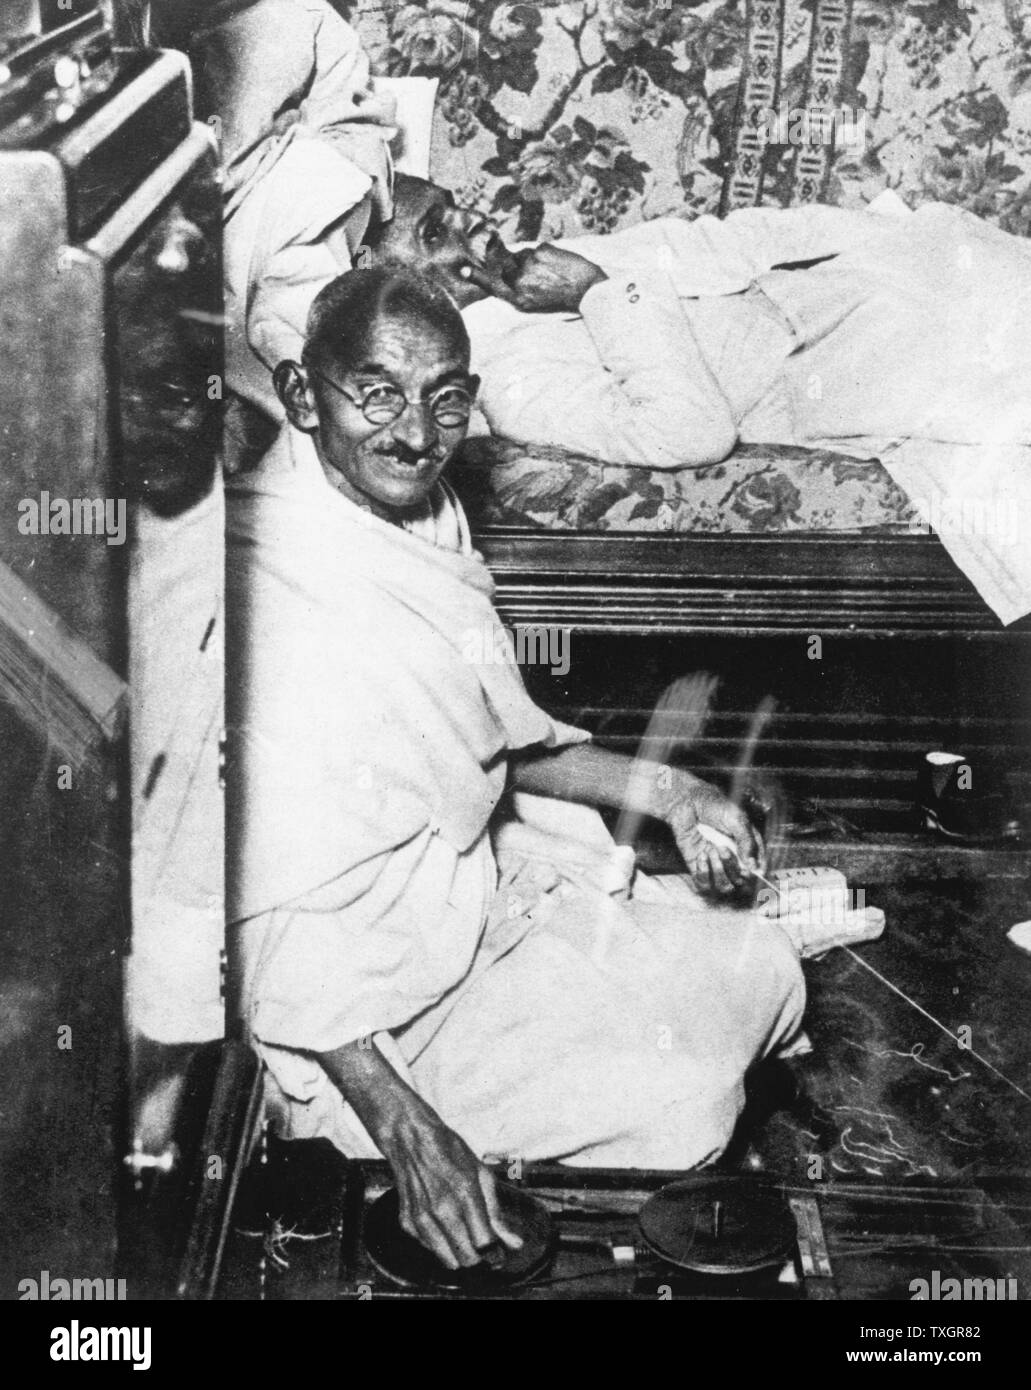 Mohondas Karamchand Gandhi  (1869-1948), known as Mahatma (Great Soul), Indian Nationalist leader. Here he is working at his spinning wheel, a symbolic task he performed almost daily. - Stock Image